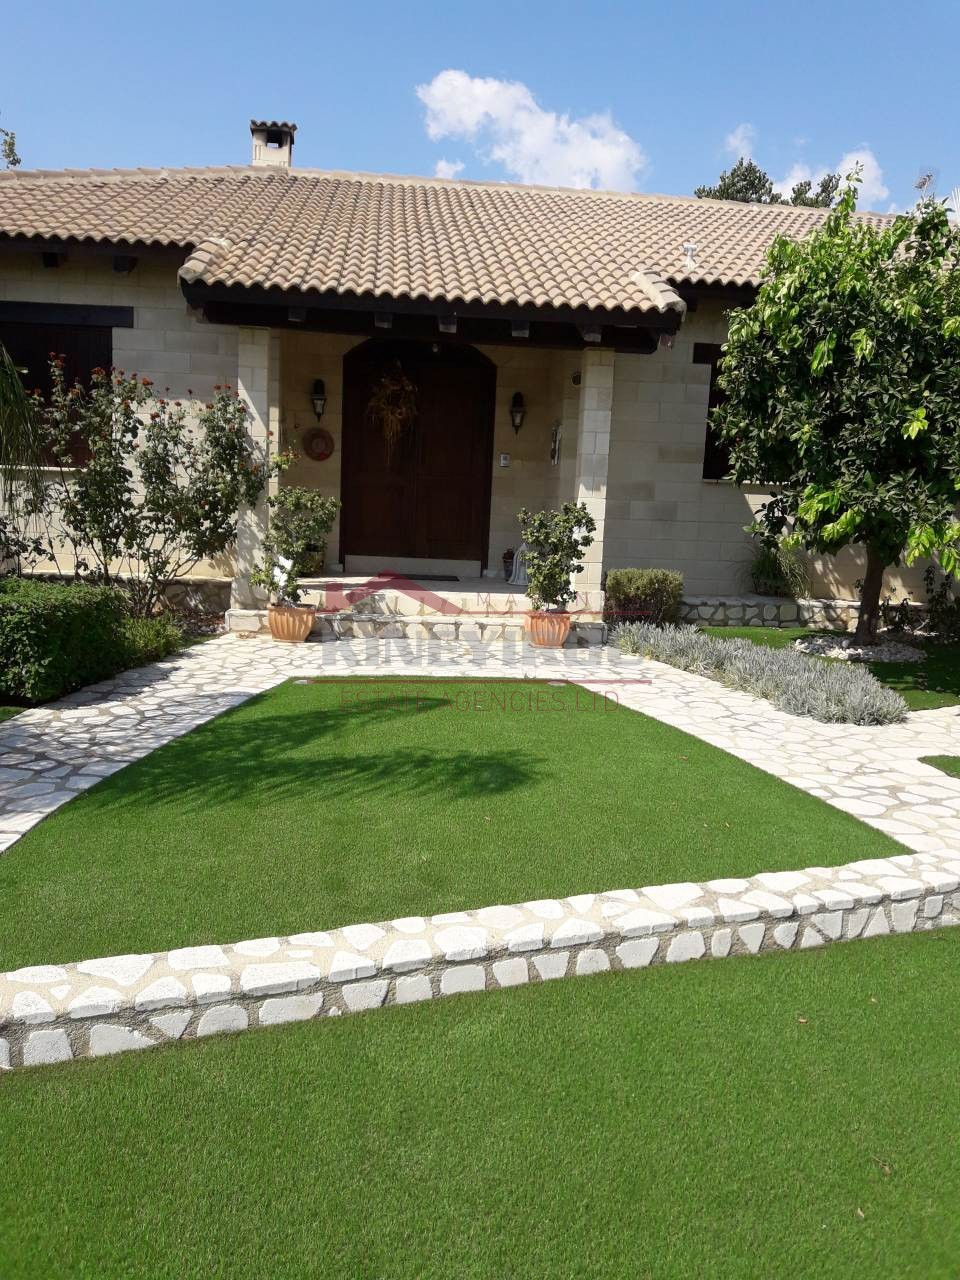 Four bedroom, bungalow house for rent in Oroklini – Larnaca